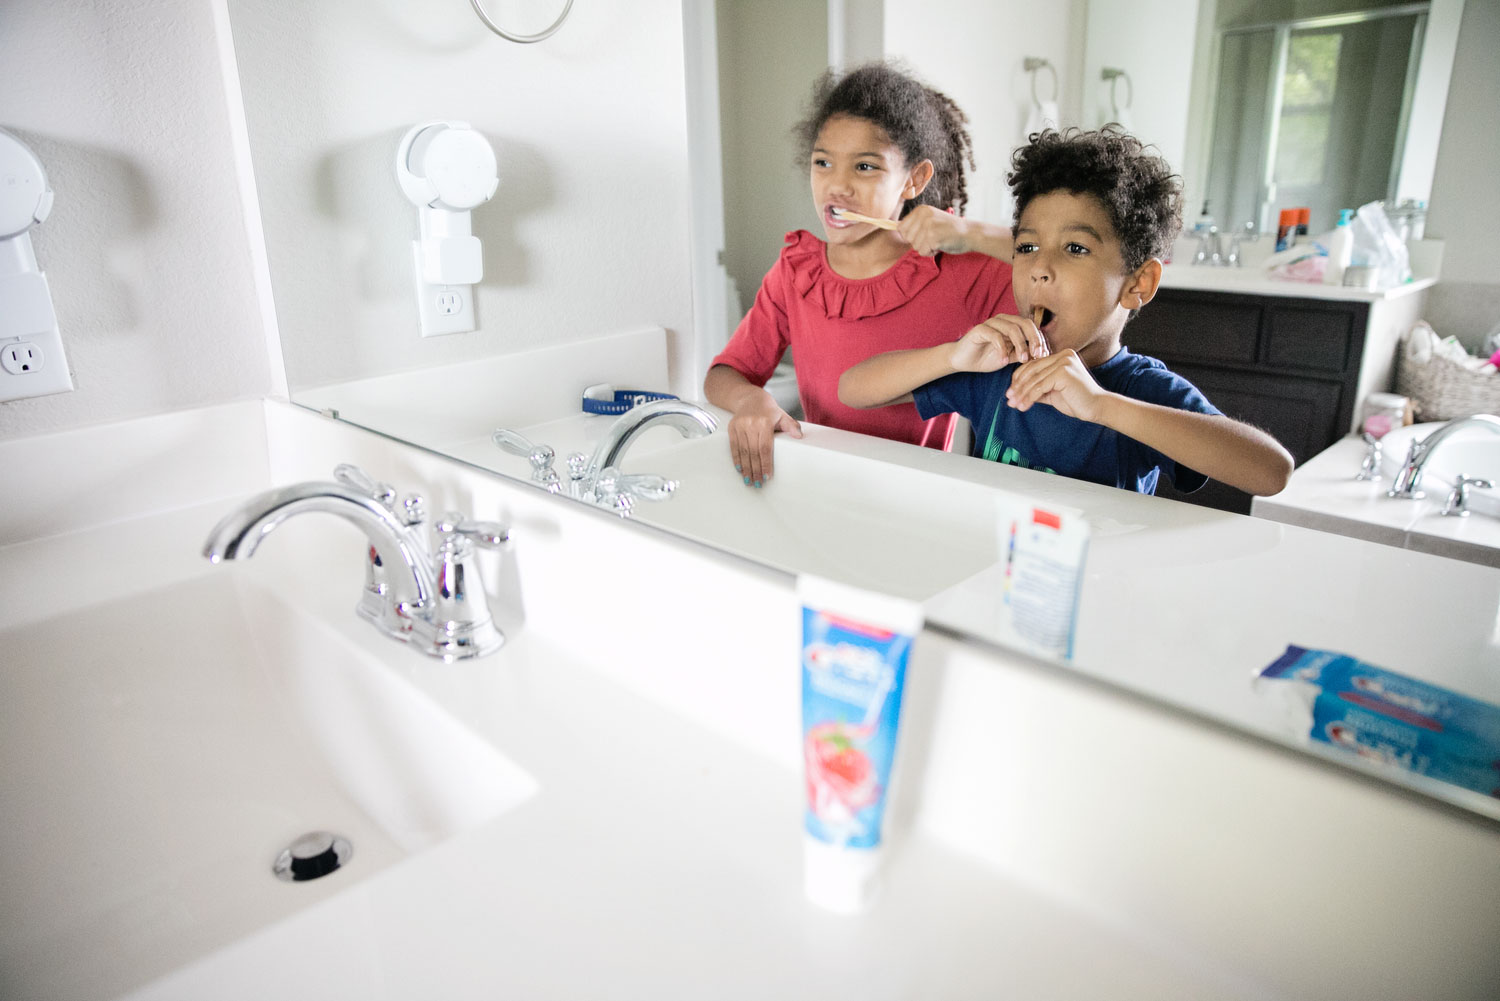 This is our mission to find the best kids toothpaste. Little girl and little boy brushing their teeth while looking in the mirror.